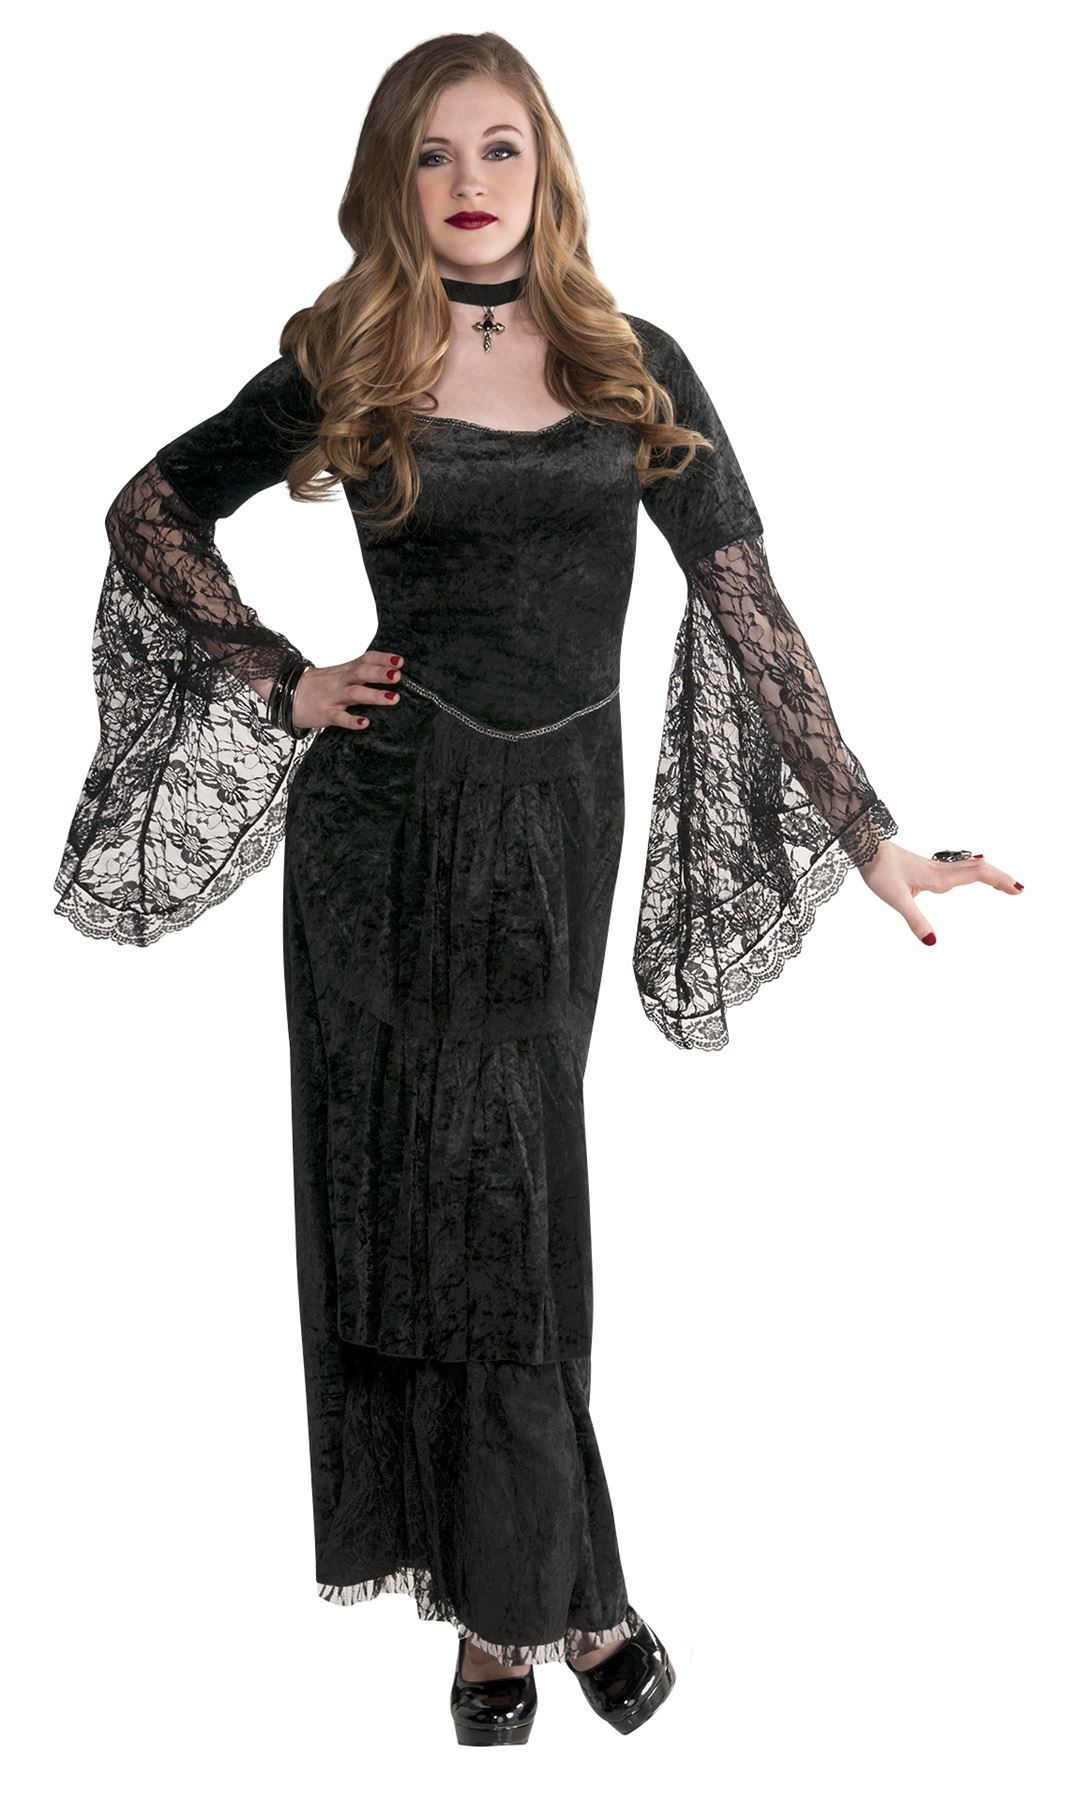 Teen Gothic Temptress Costume. This spooky Halloween fancy dress is party ready with lace detailing  sc 1 st  Pinterest & Teen Girls Gothic Temptress Costume Vampire Witch Halloween Costume ...